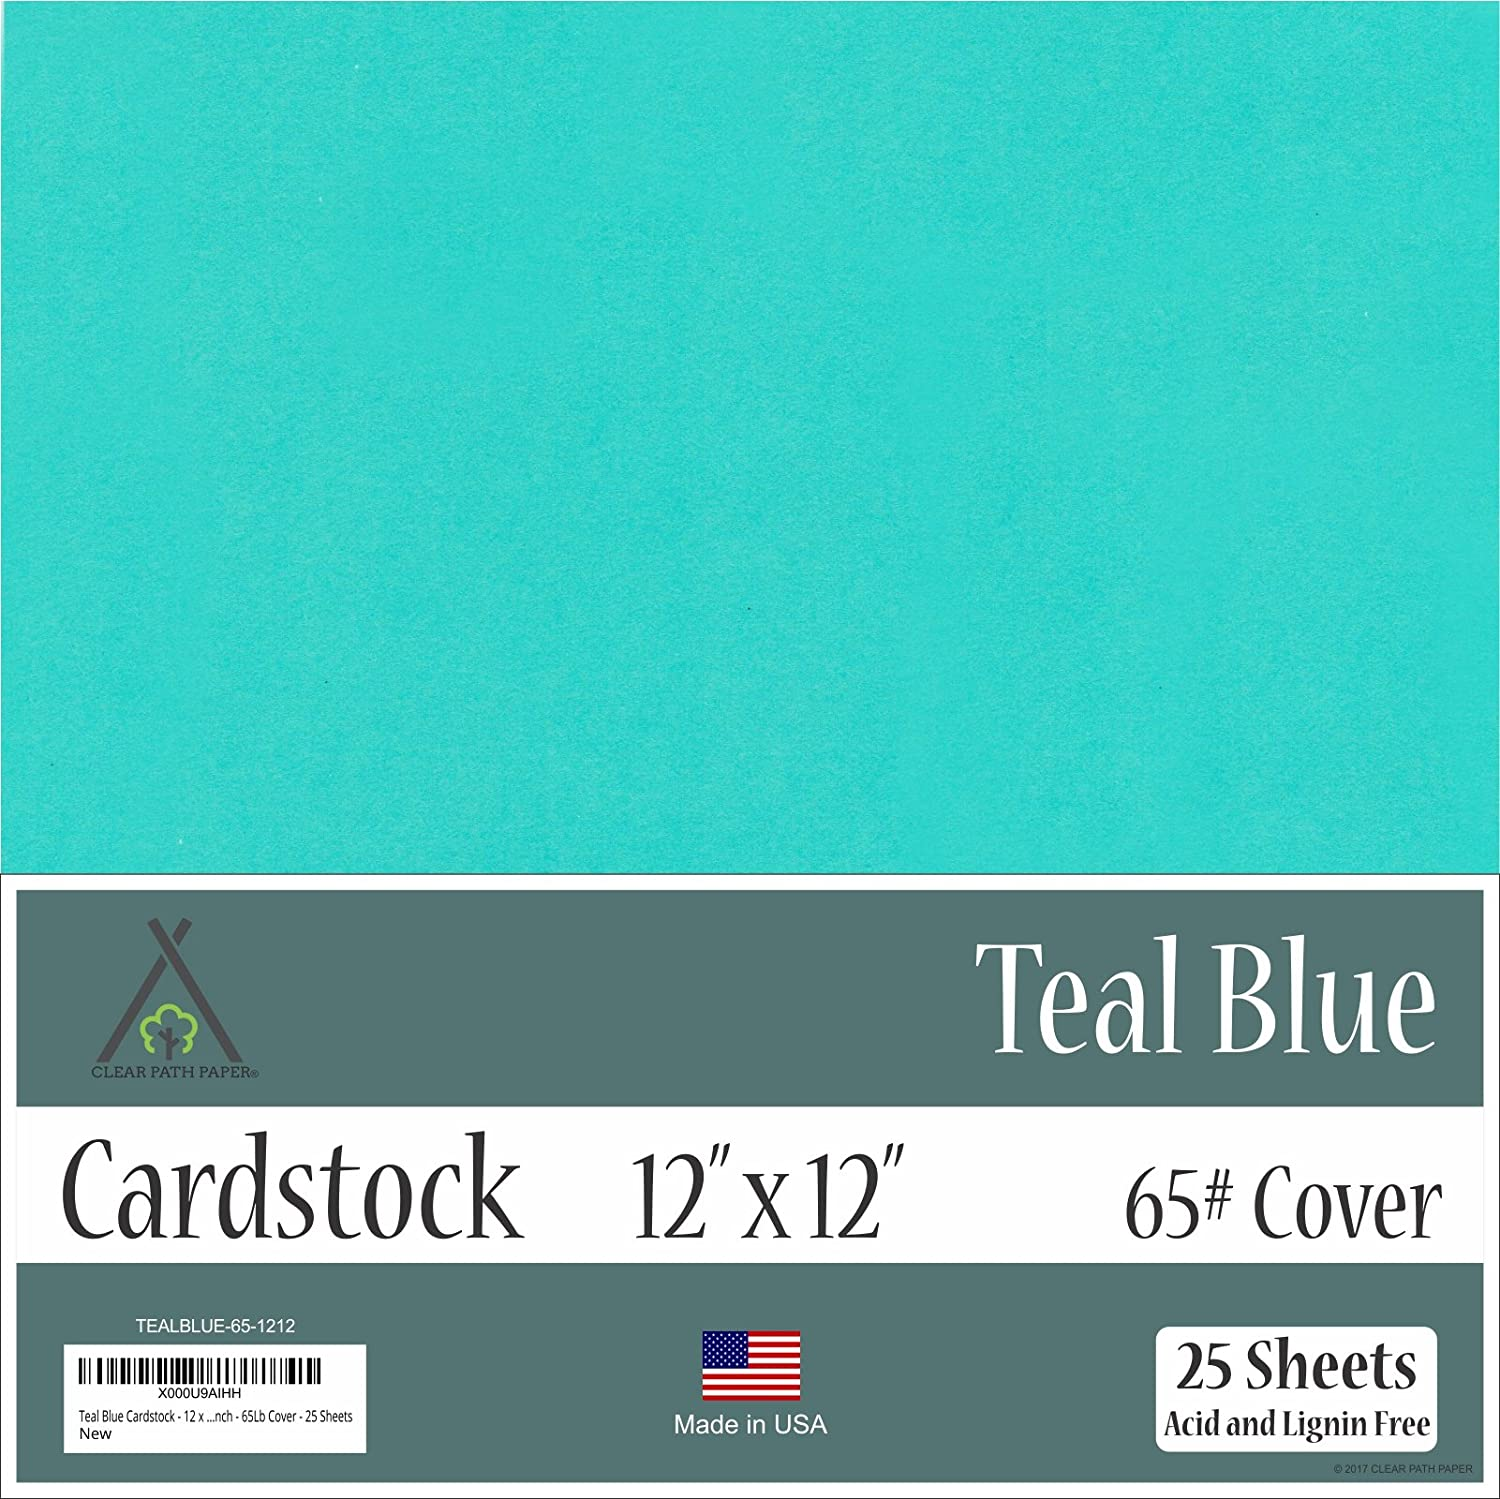 Teal Blue Cardstock - 12 x 12 inch - 65Lb Cover - 25 Sheets Clear Path Paper CW-TEAL-1212-1S